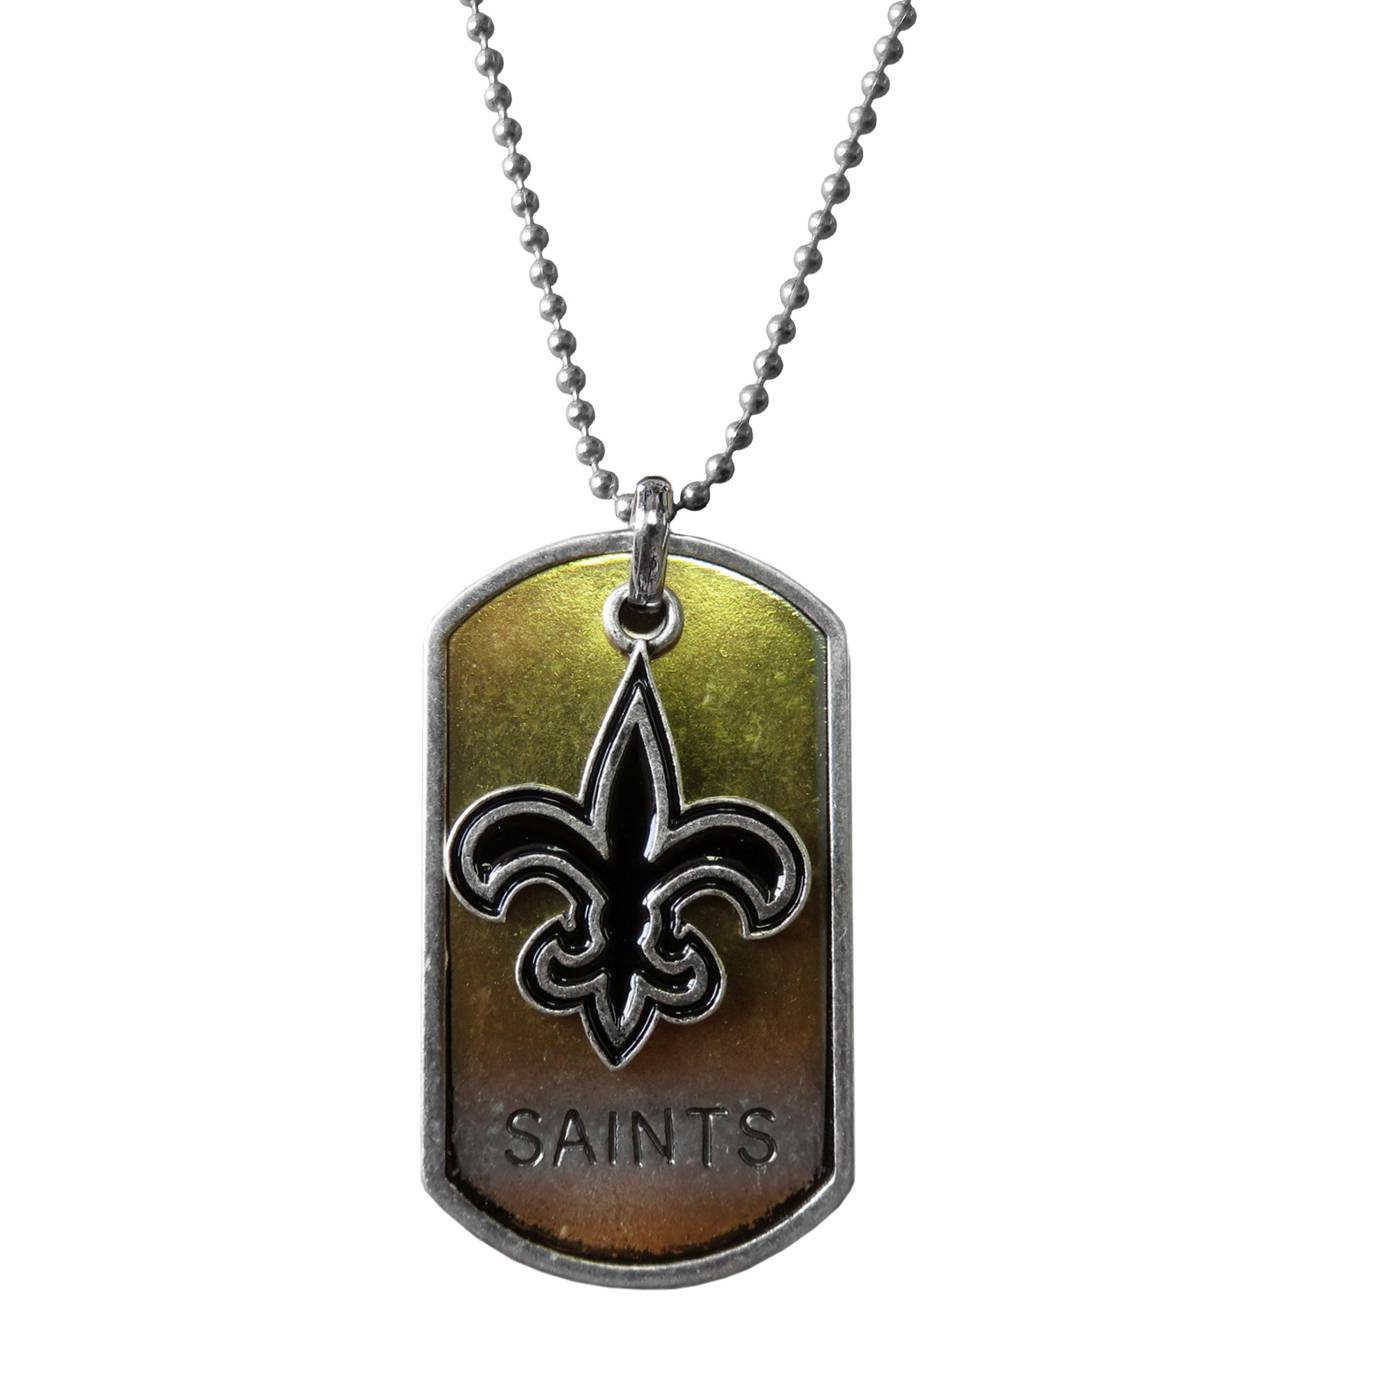 for lyst men silver in normal gallery jewelry saints metallic necklace product sterling miansai